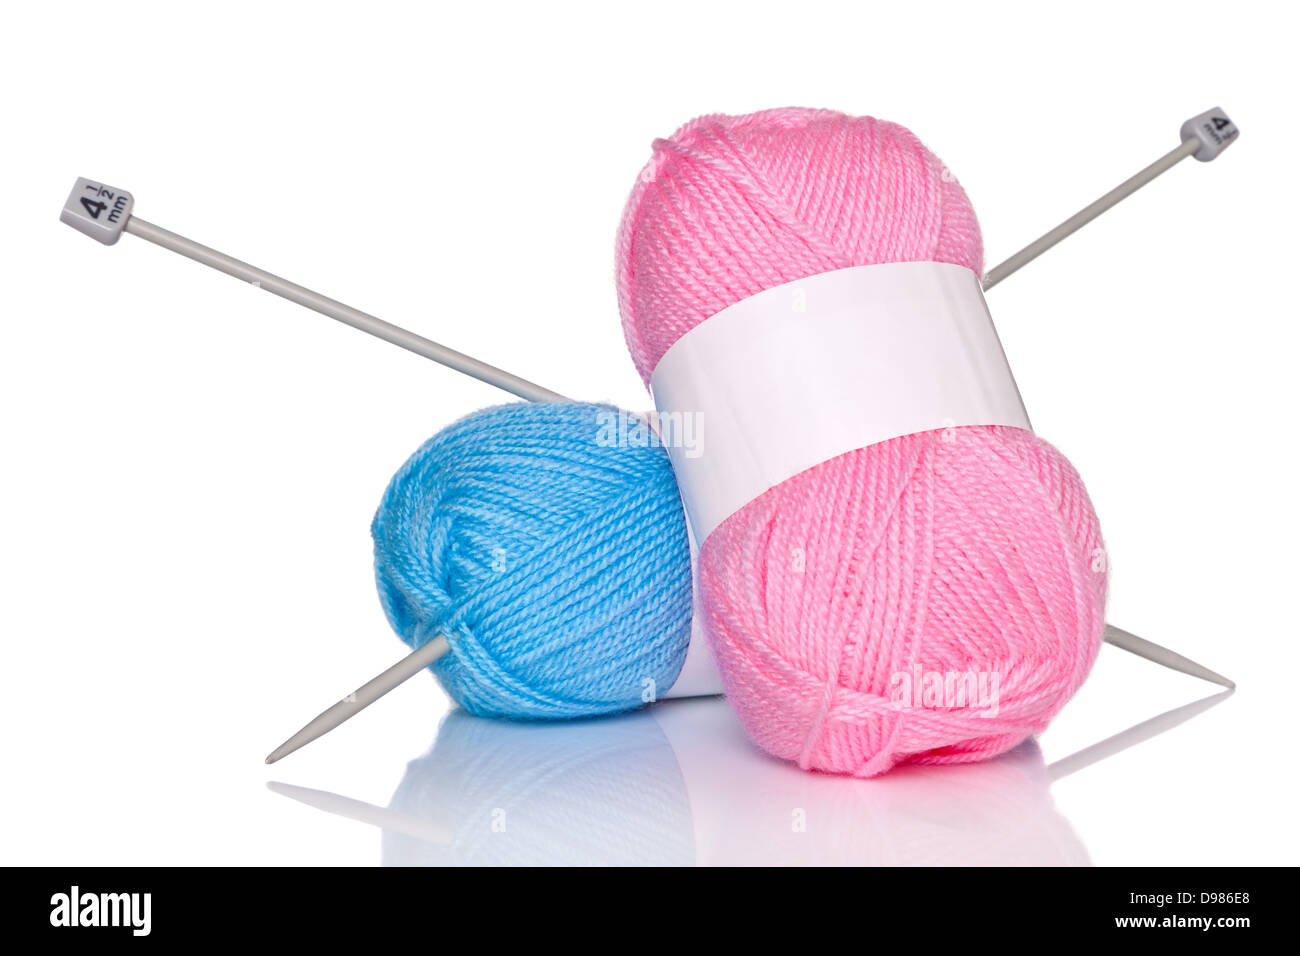 Balls of wool and knitting needles isolated on a white background. - Stock Image